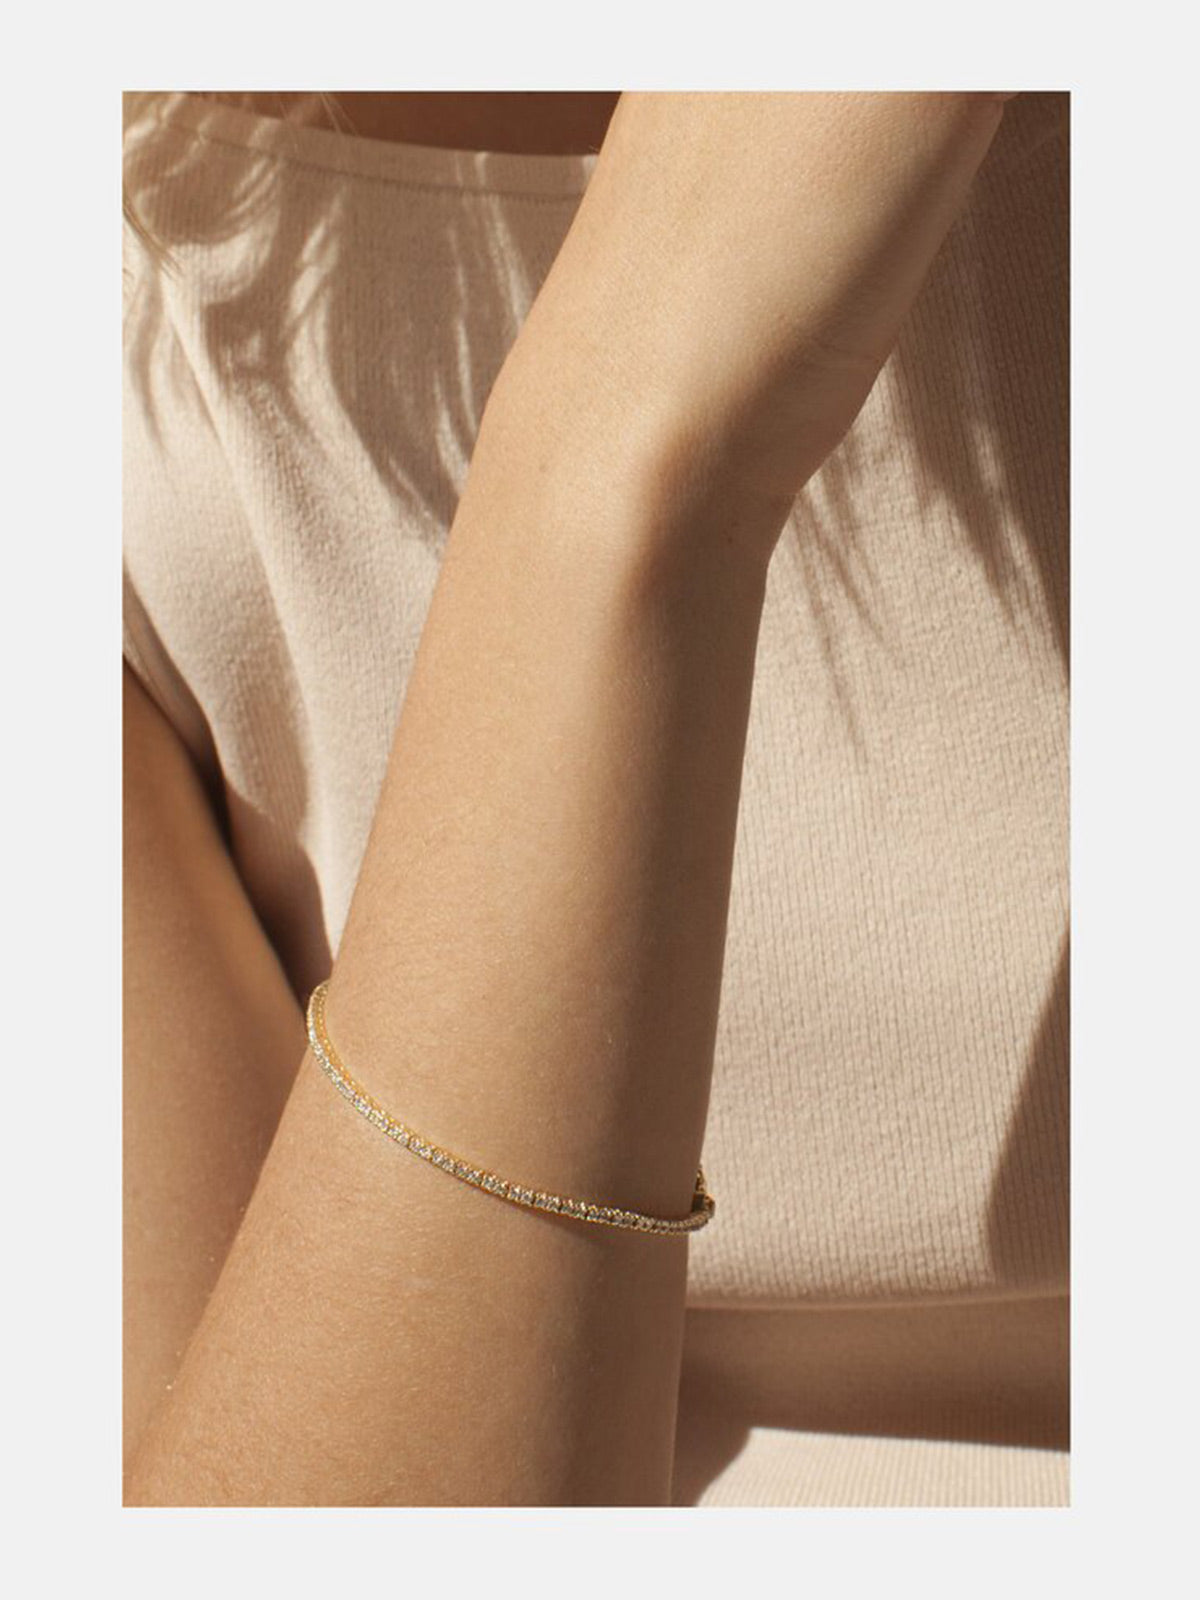 Petite Diamond Eternity Bracelet | Yellow Gold